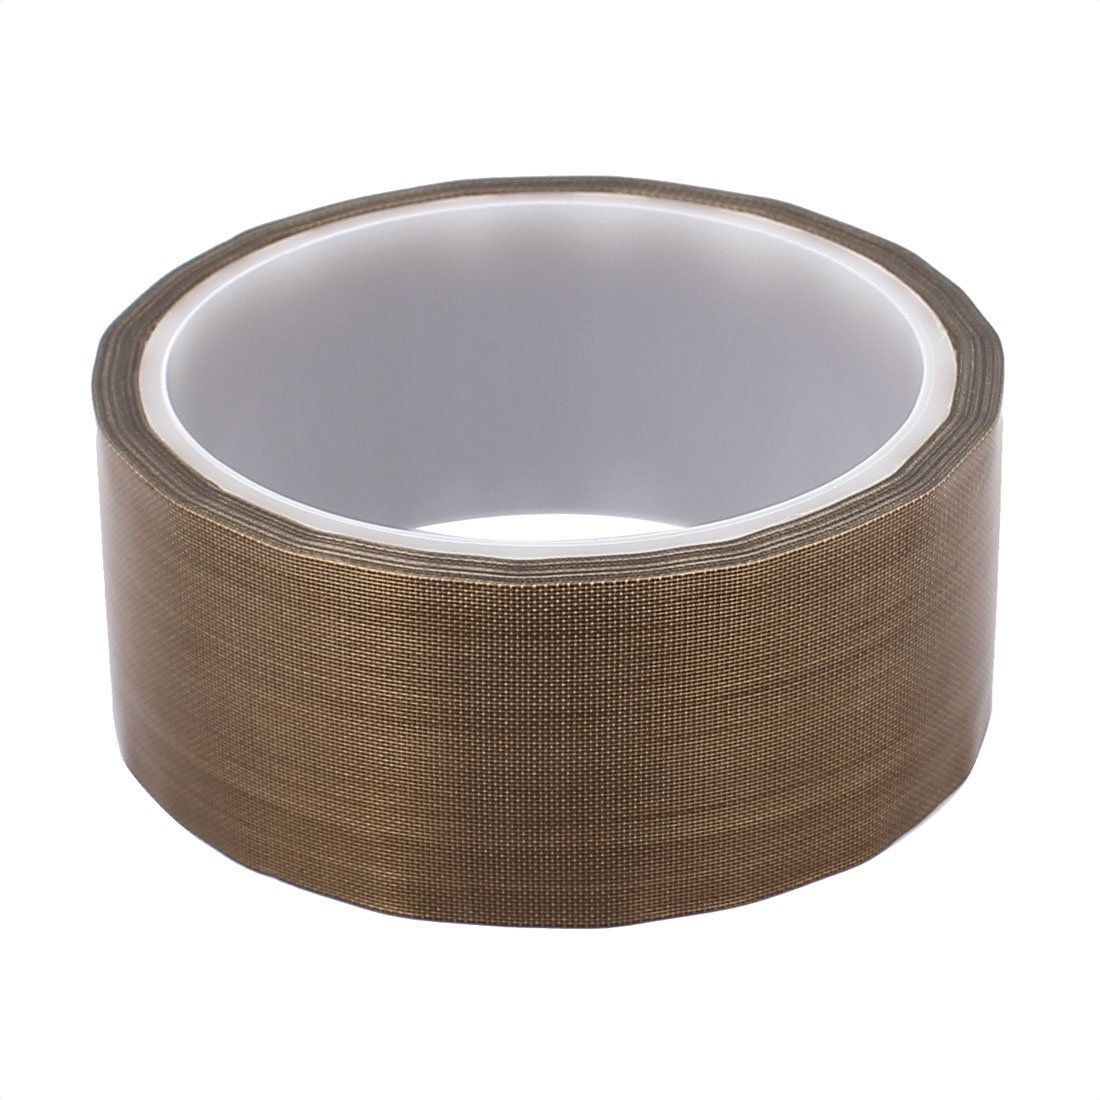 DealMux 0.13 x 38mm PTFE Tape High Temperature Resistant Tape Non-Adhesive Tape for Sealing Machine